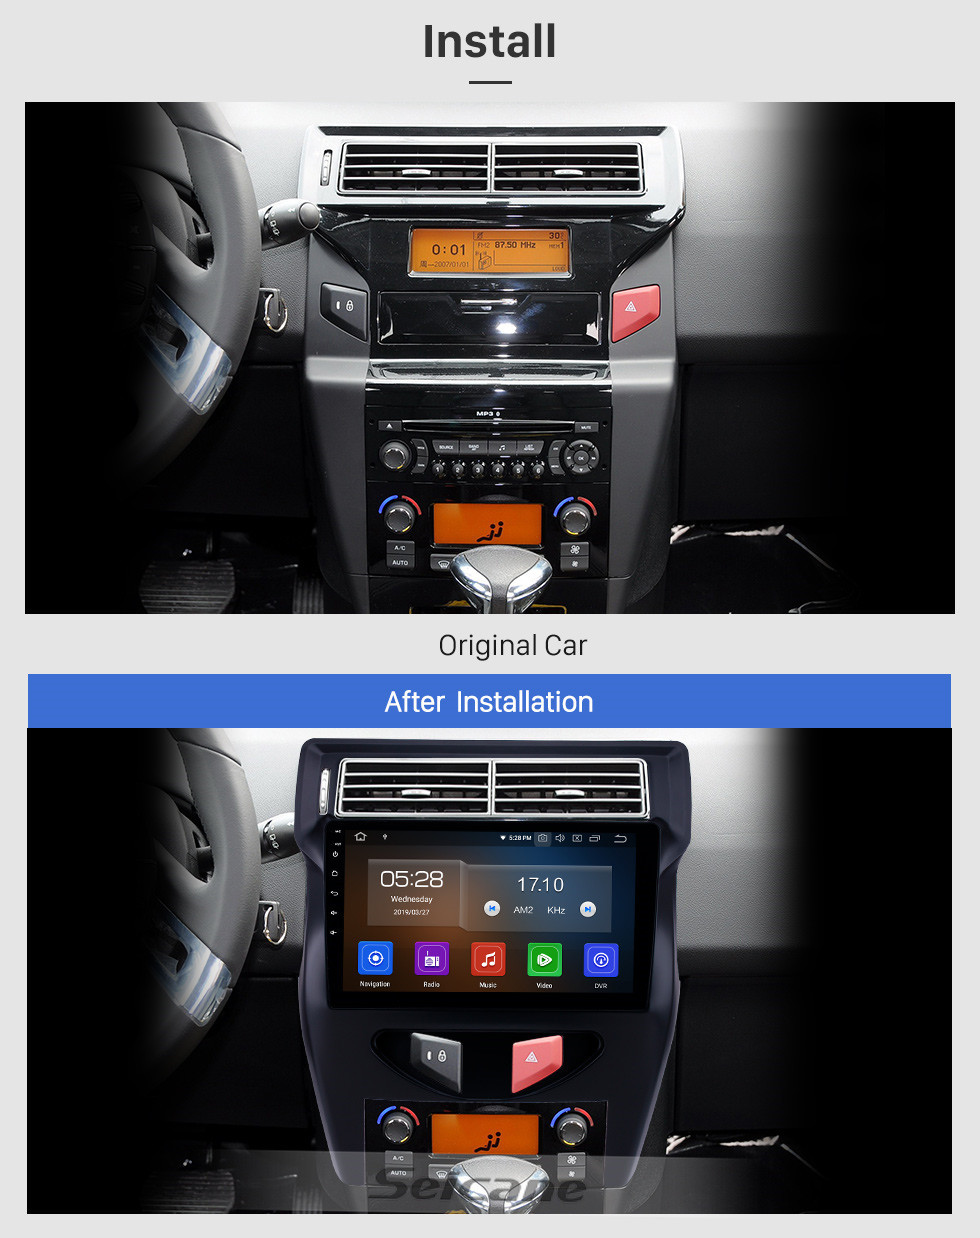 Seicane 2012 Citroen C4 C-QUATRE 10.1 inch Android 10.0 Radio with HD Touchscreen GPS Navigation Bluetooth AUX support DVR TPMS Backup camera 4G WIFI OBD2